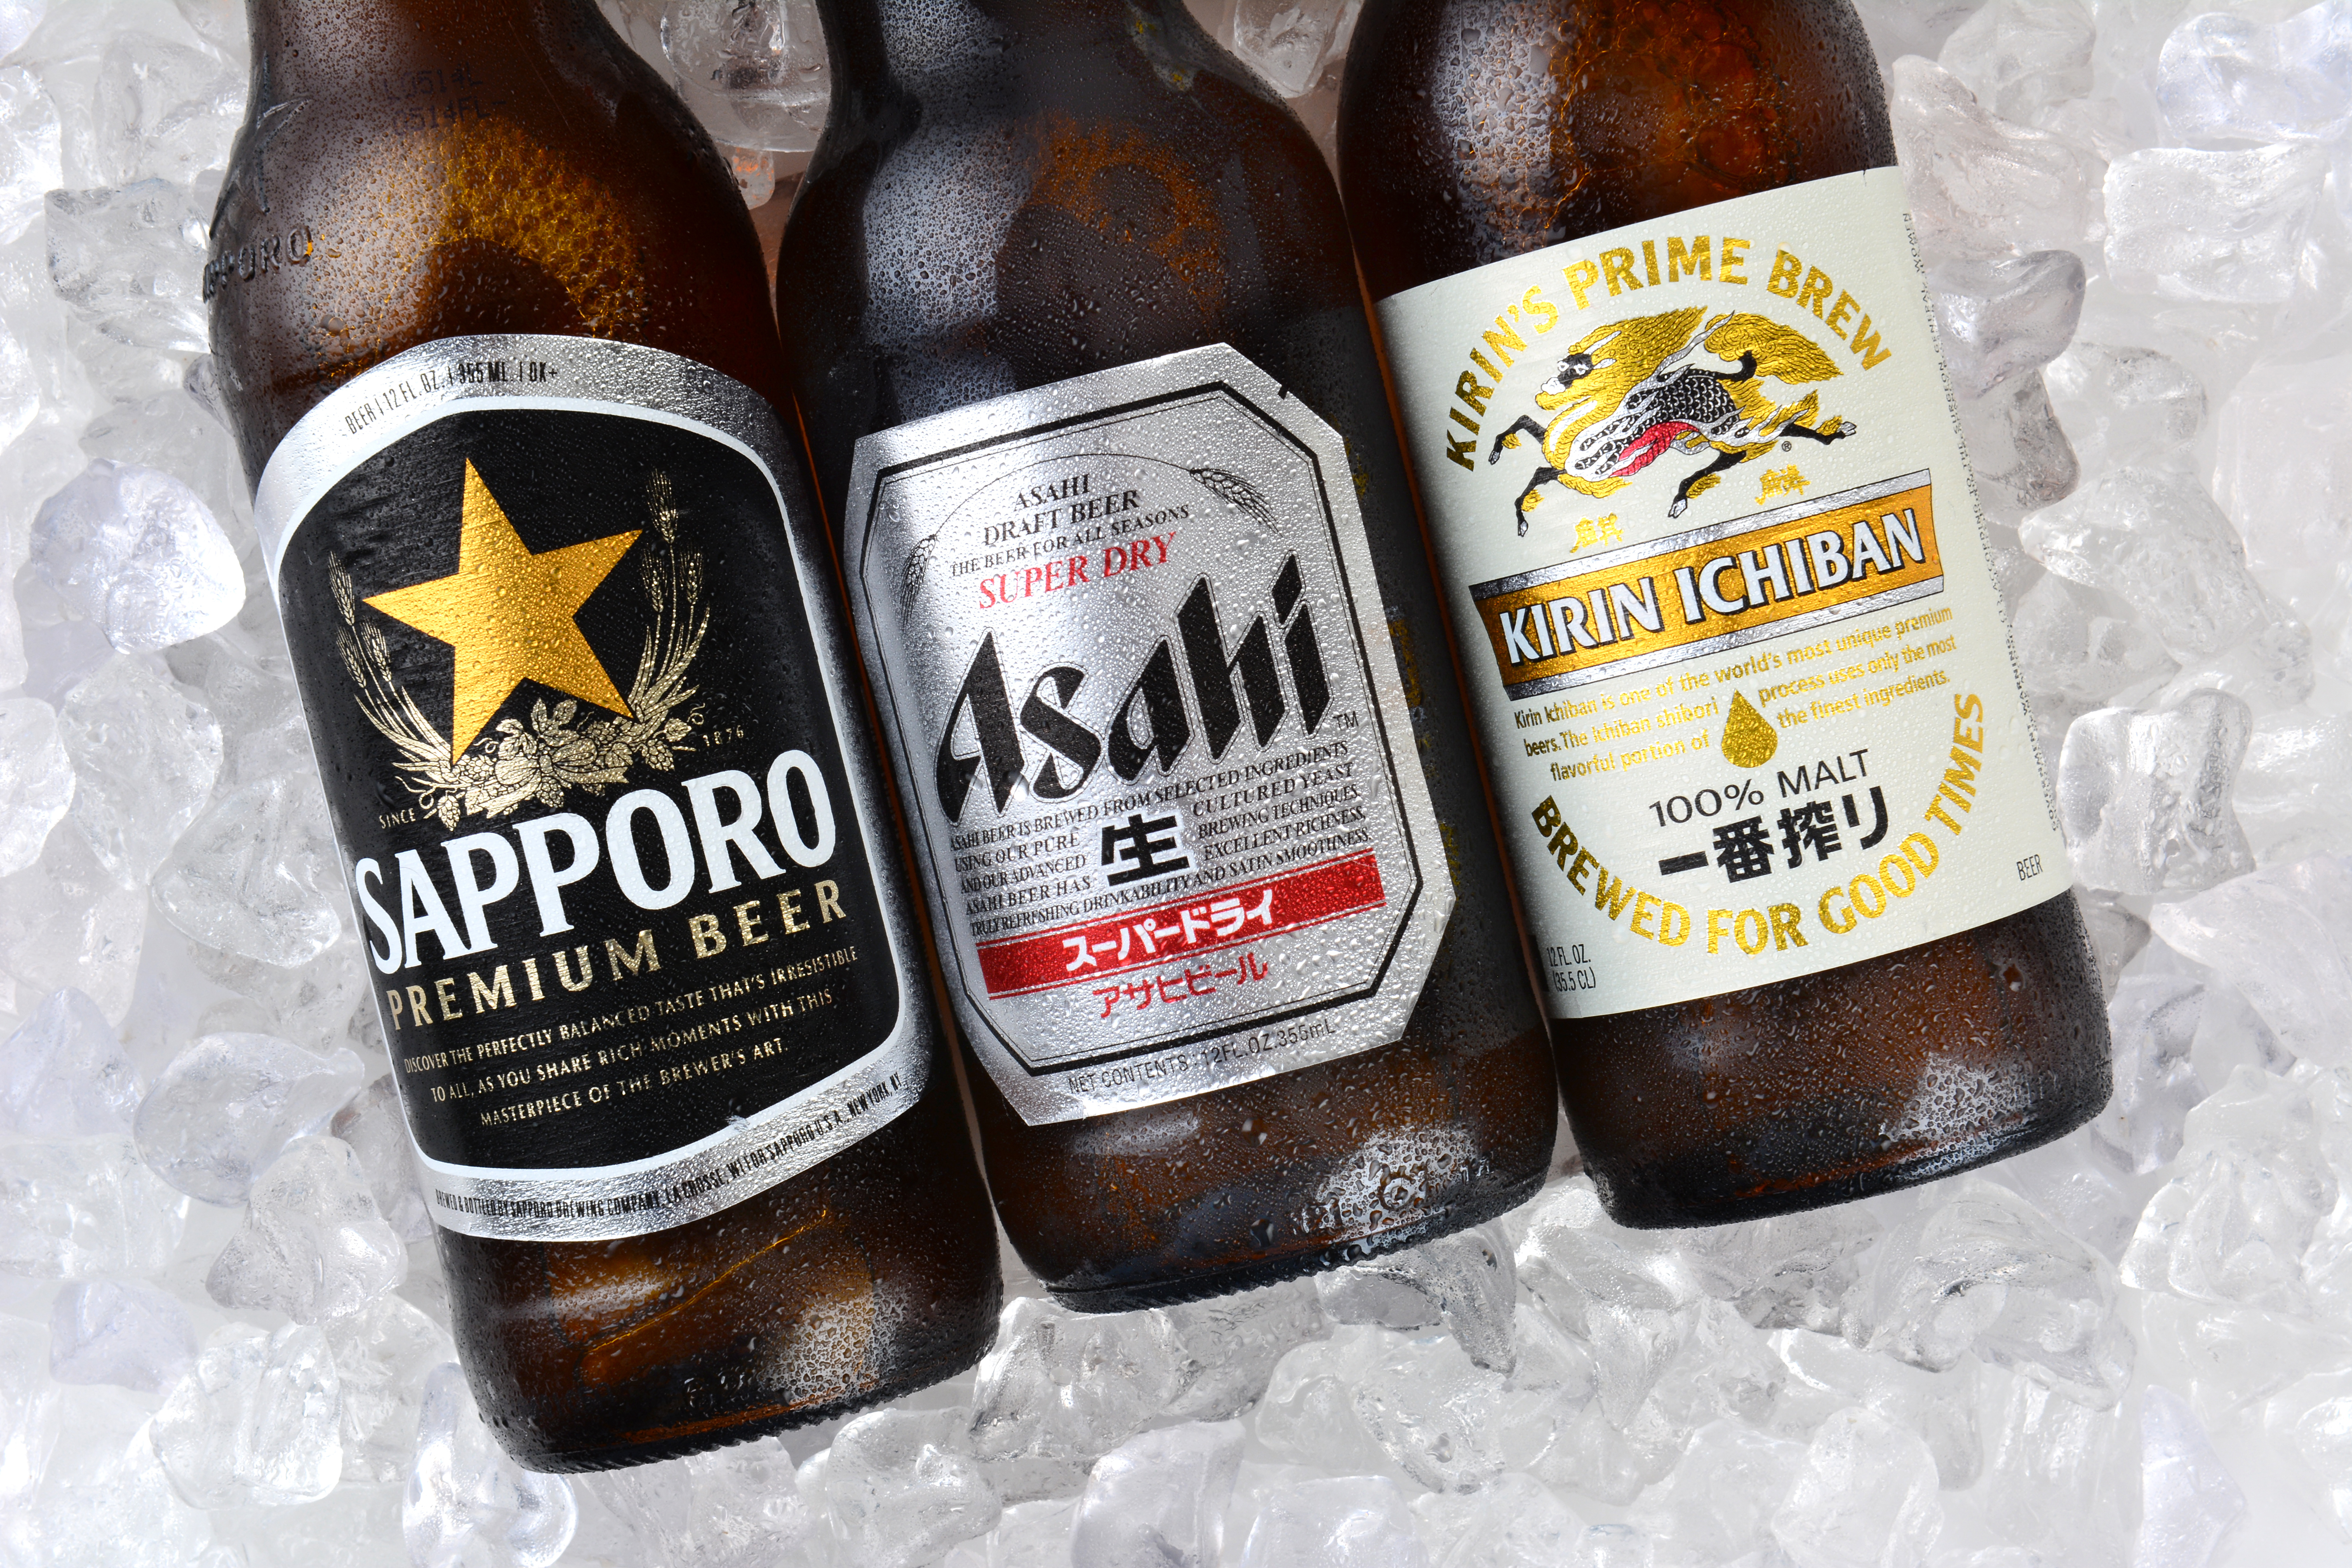 japanese beer market is the worlds (newser) - for the past three years, the biggest-selling beer in the world was a brew you've probably never heard of: china's snow beer, reports the telegraph and with the chinese beer market.